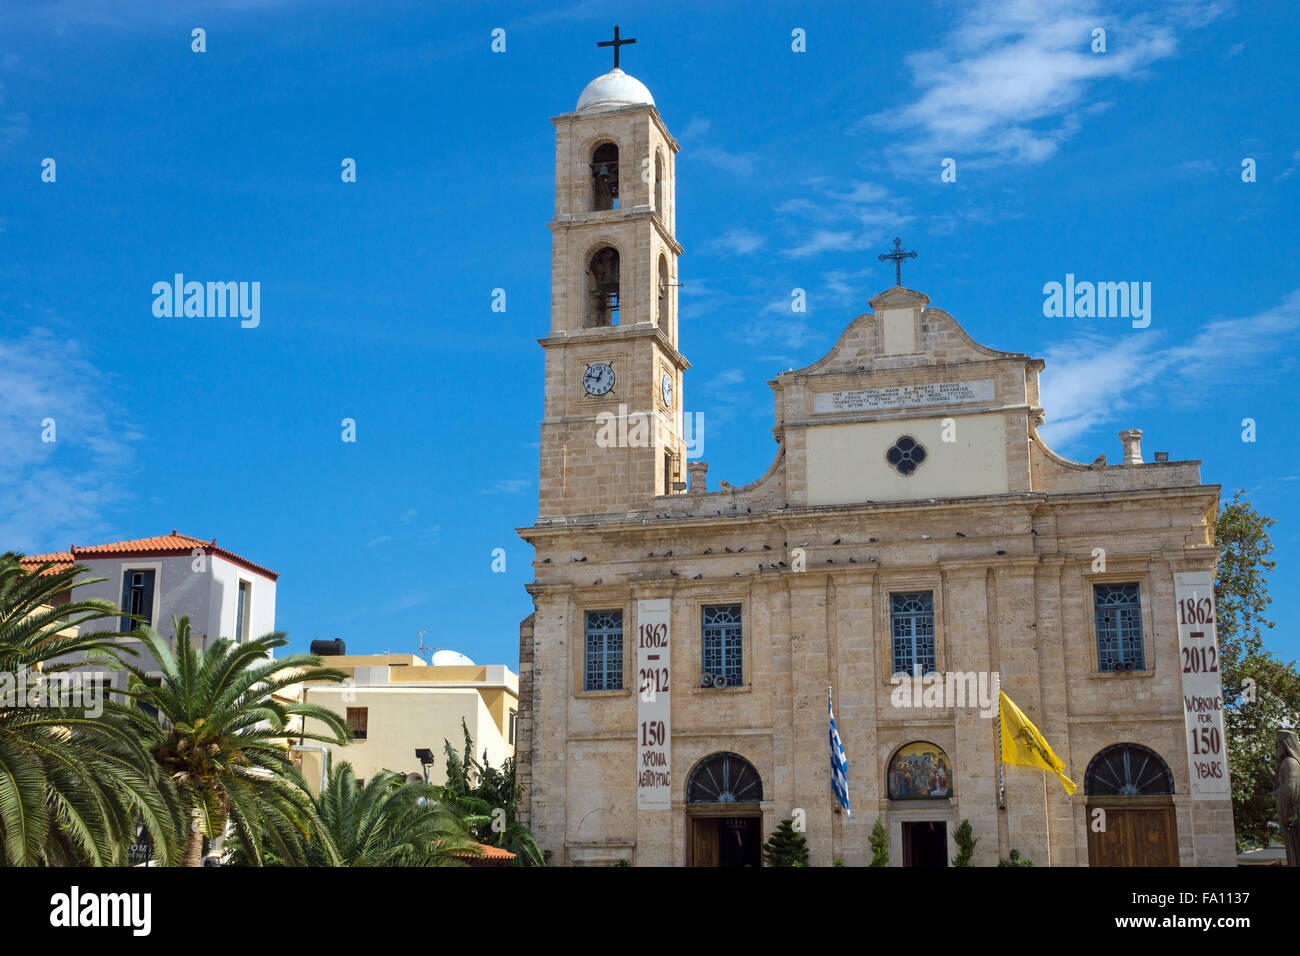 The orthodox Trimartyri Cathedral in Chania, Greece Stock Photo